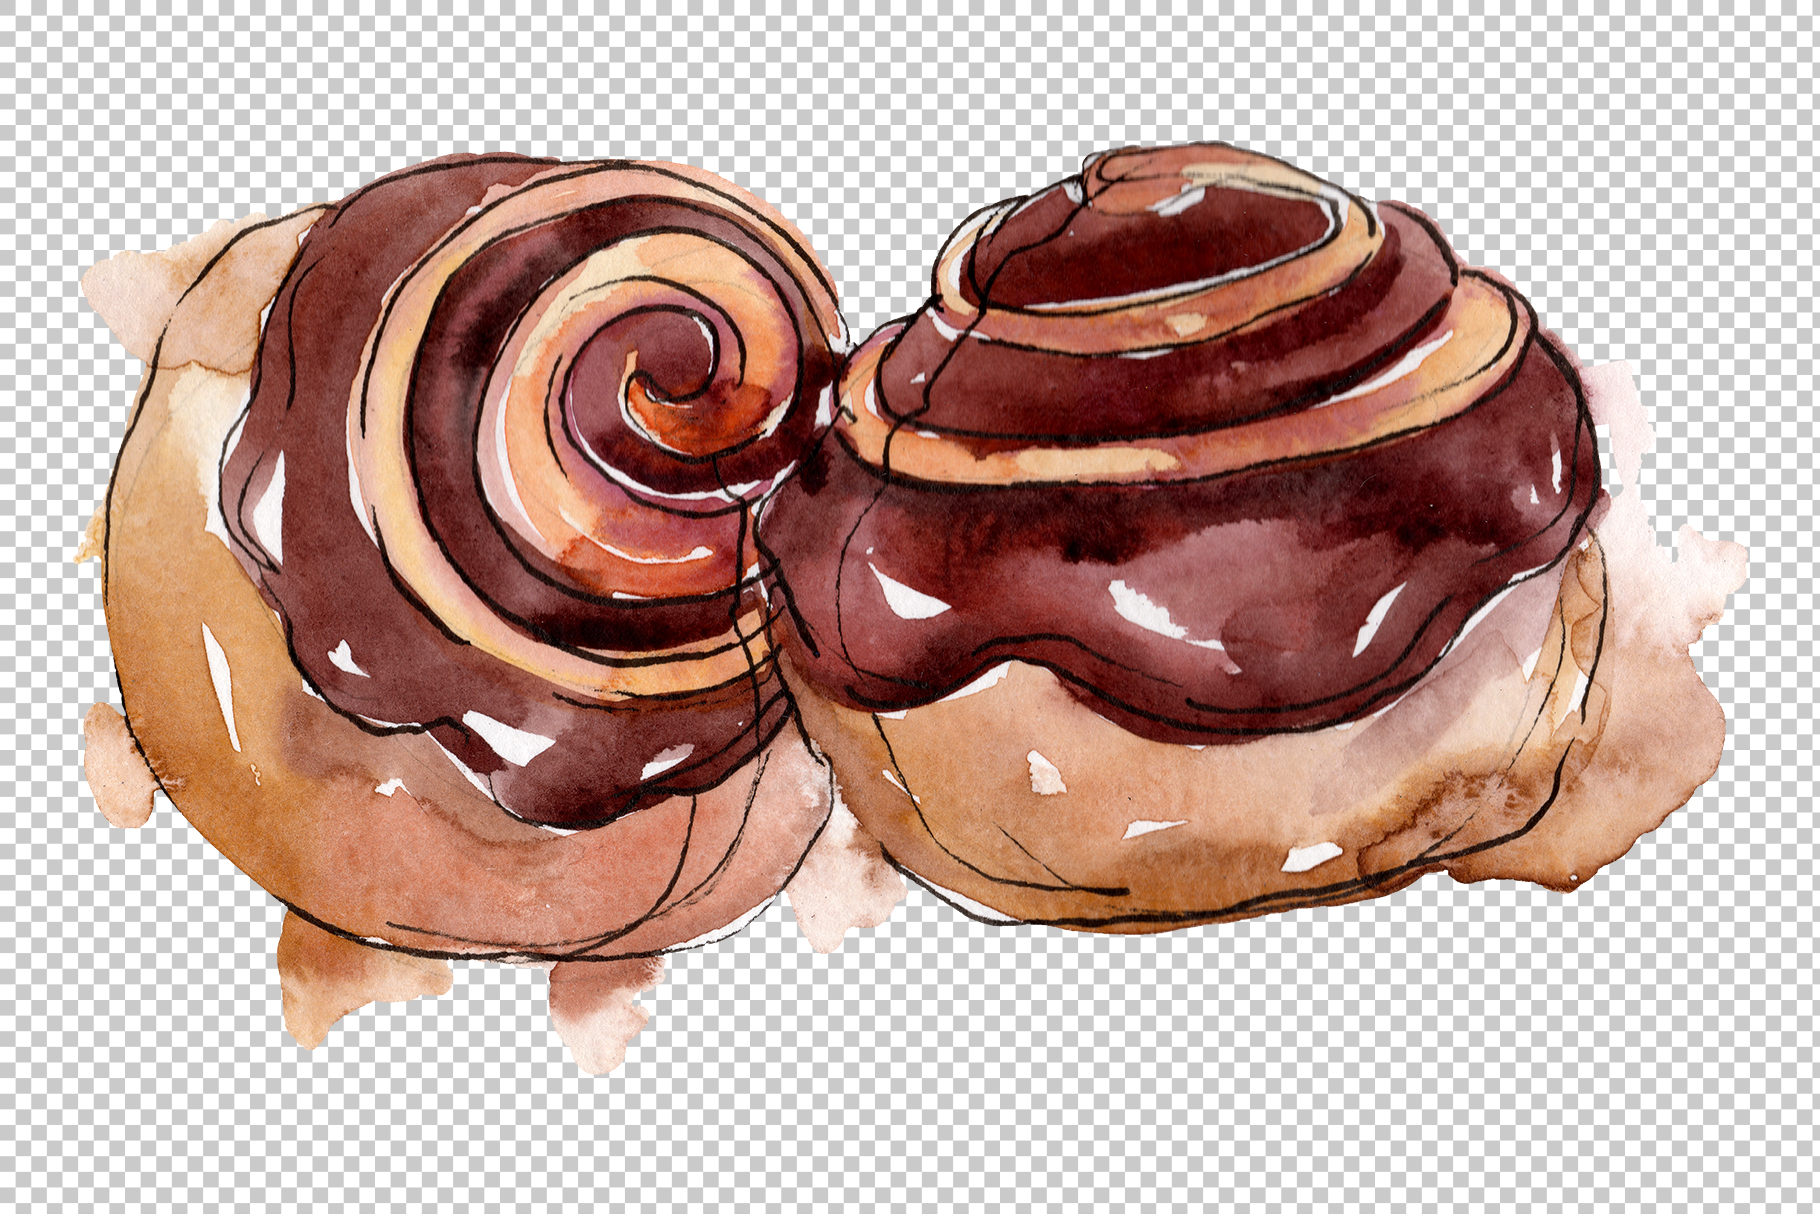 Dessert Appetizing Watercolor png example image 3